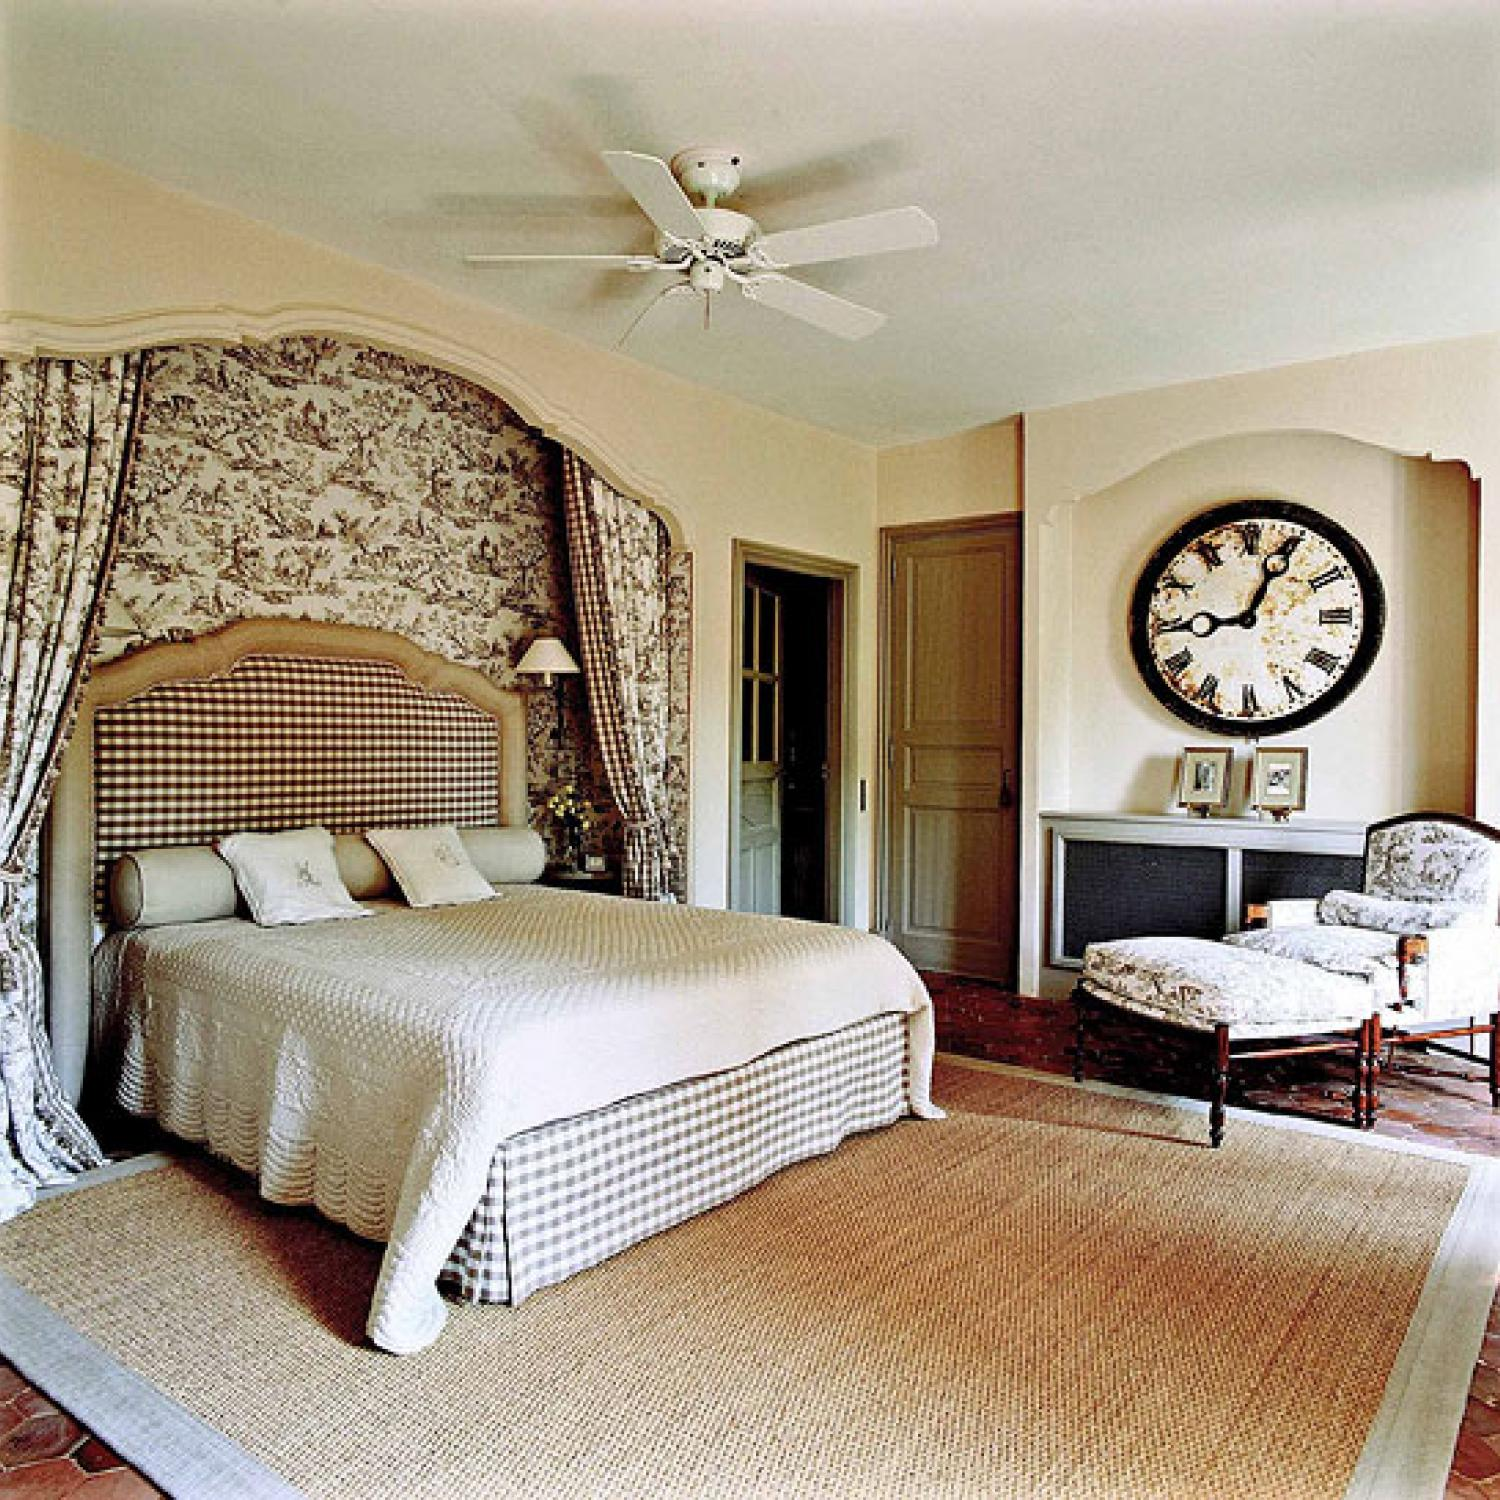 Unique Master Bedroom Decorating Ideas Wall Art Ideas For Bedroom Pinterest Bedroom Tapestry Luxury Black Bedroom: Bedroom Decorating Ideas: Totally Toile